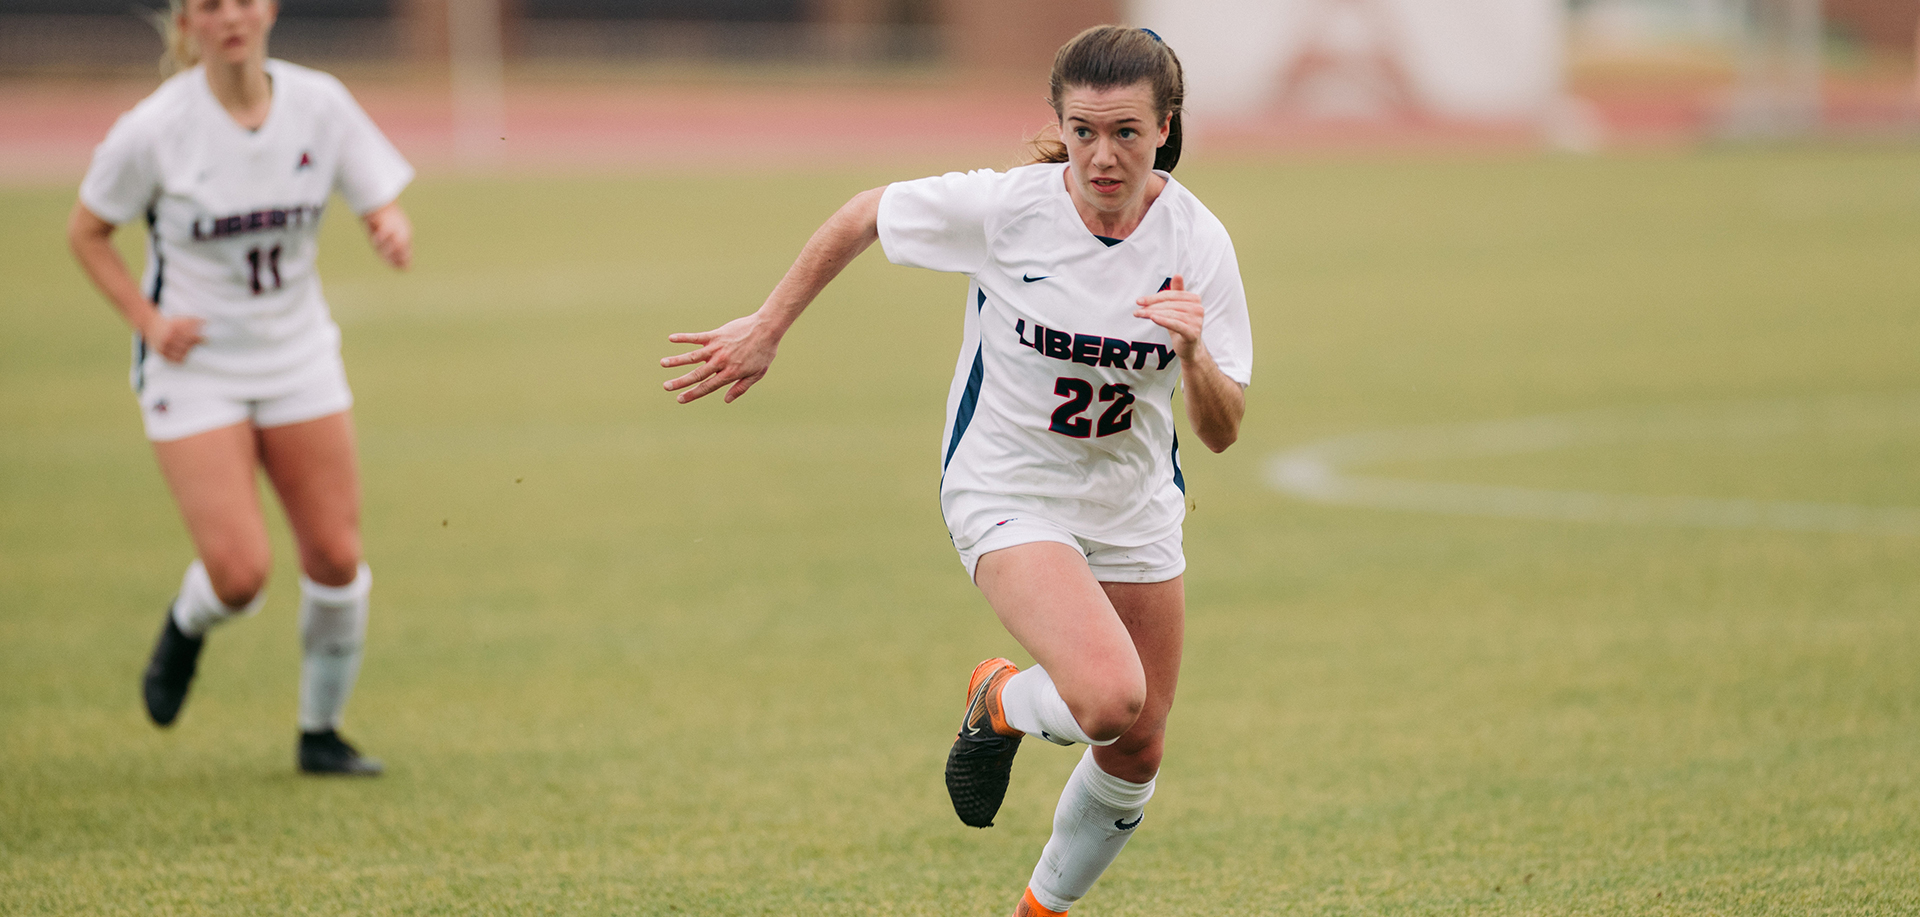 Rachel DeRuby Scores First Career Goal in Win Over KSU